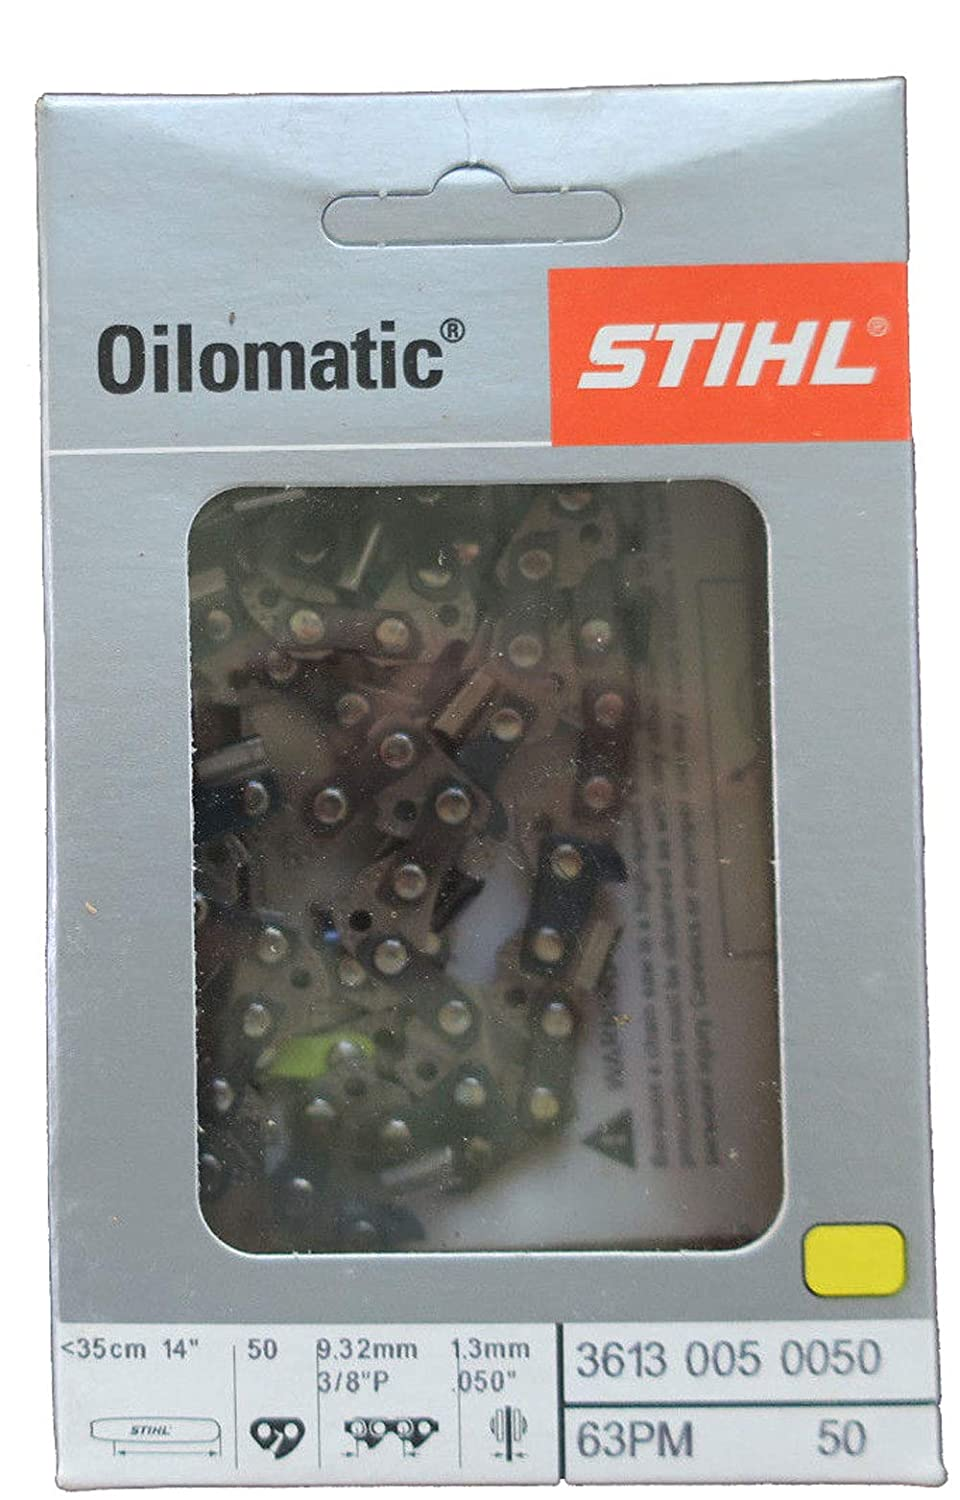 63 PM-50 STIHL 14 Picco Micro -Chainsaw Chain - 50 Drive Links - 3/8 Pitch - .050 Gauge